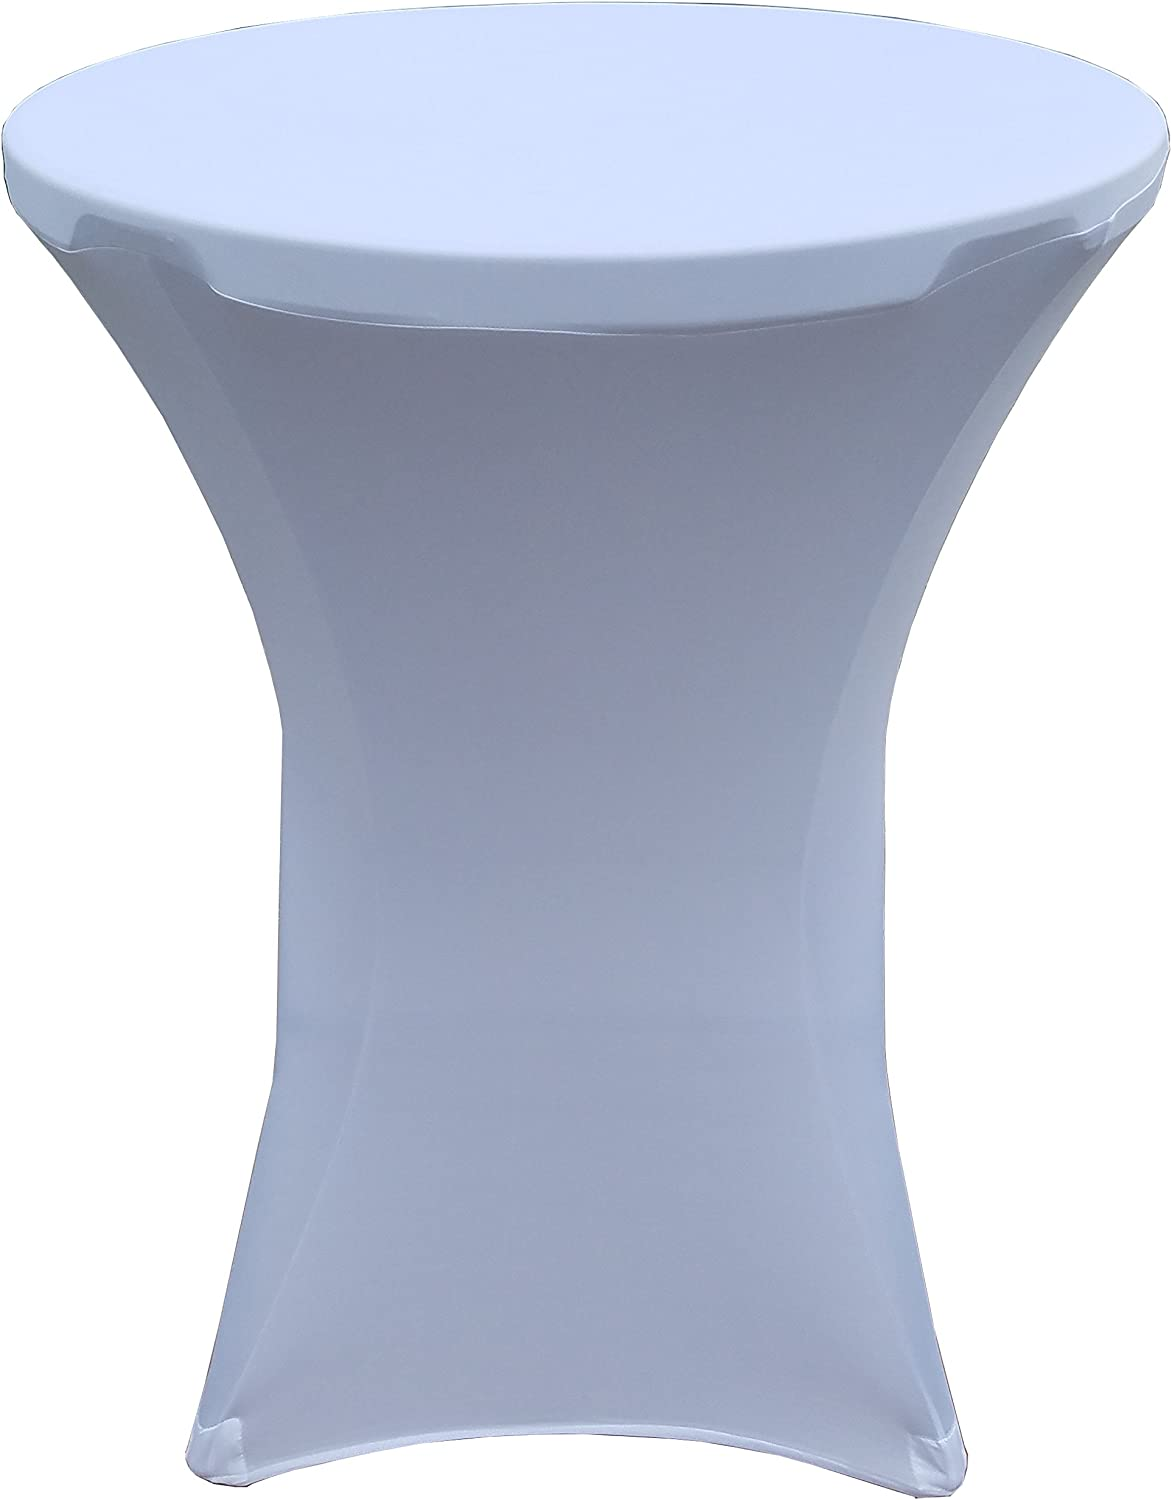 32 Round x 43 Tall Spandex Fitted Table Cover for Folding Bar Height Tables White